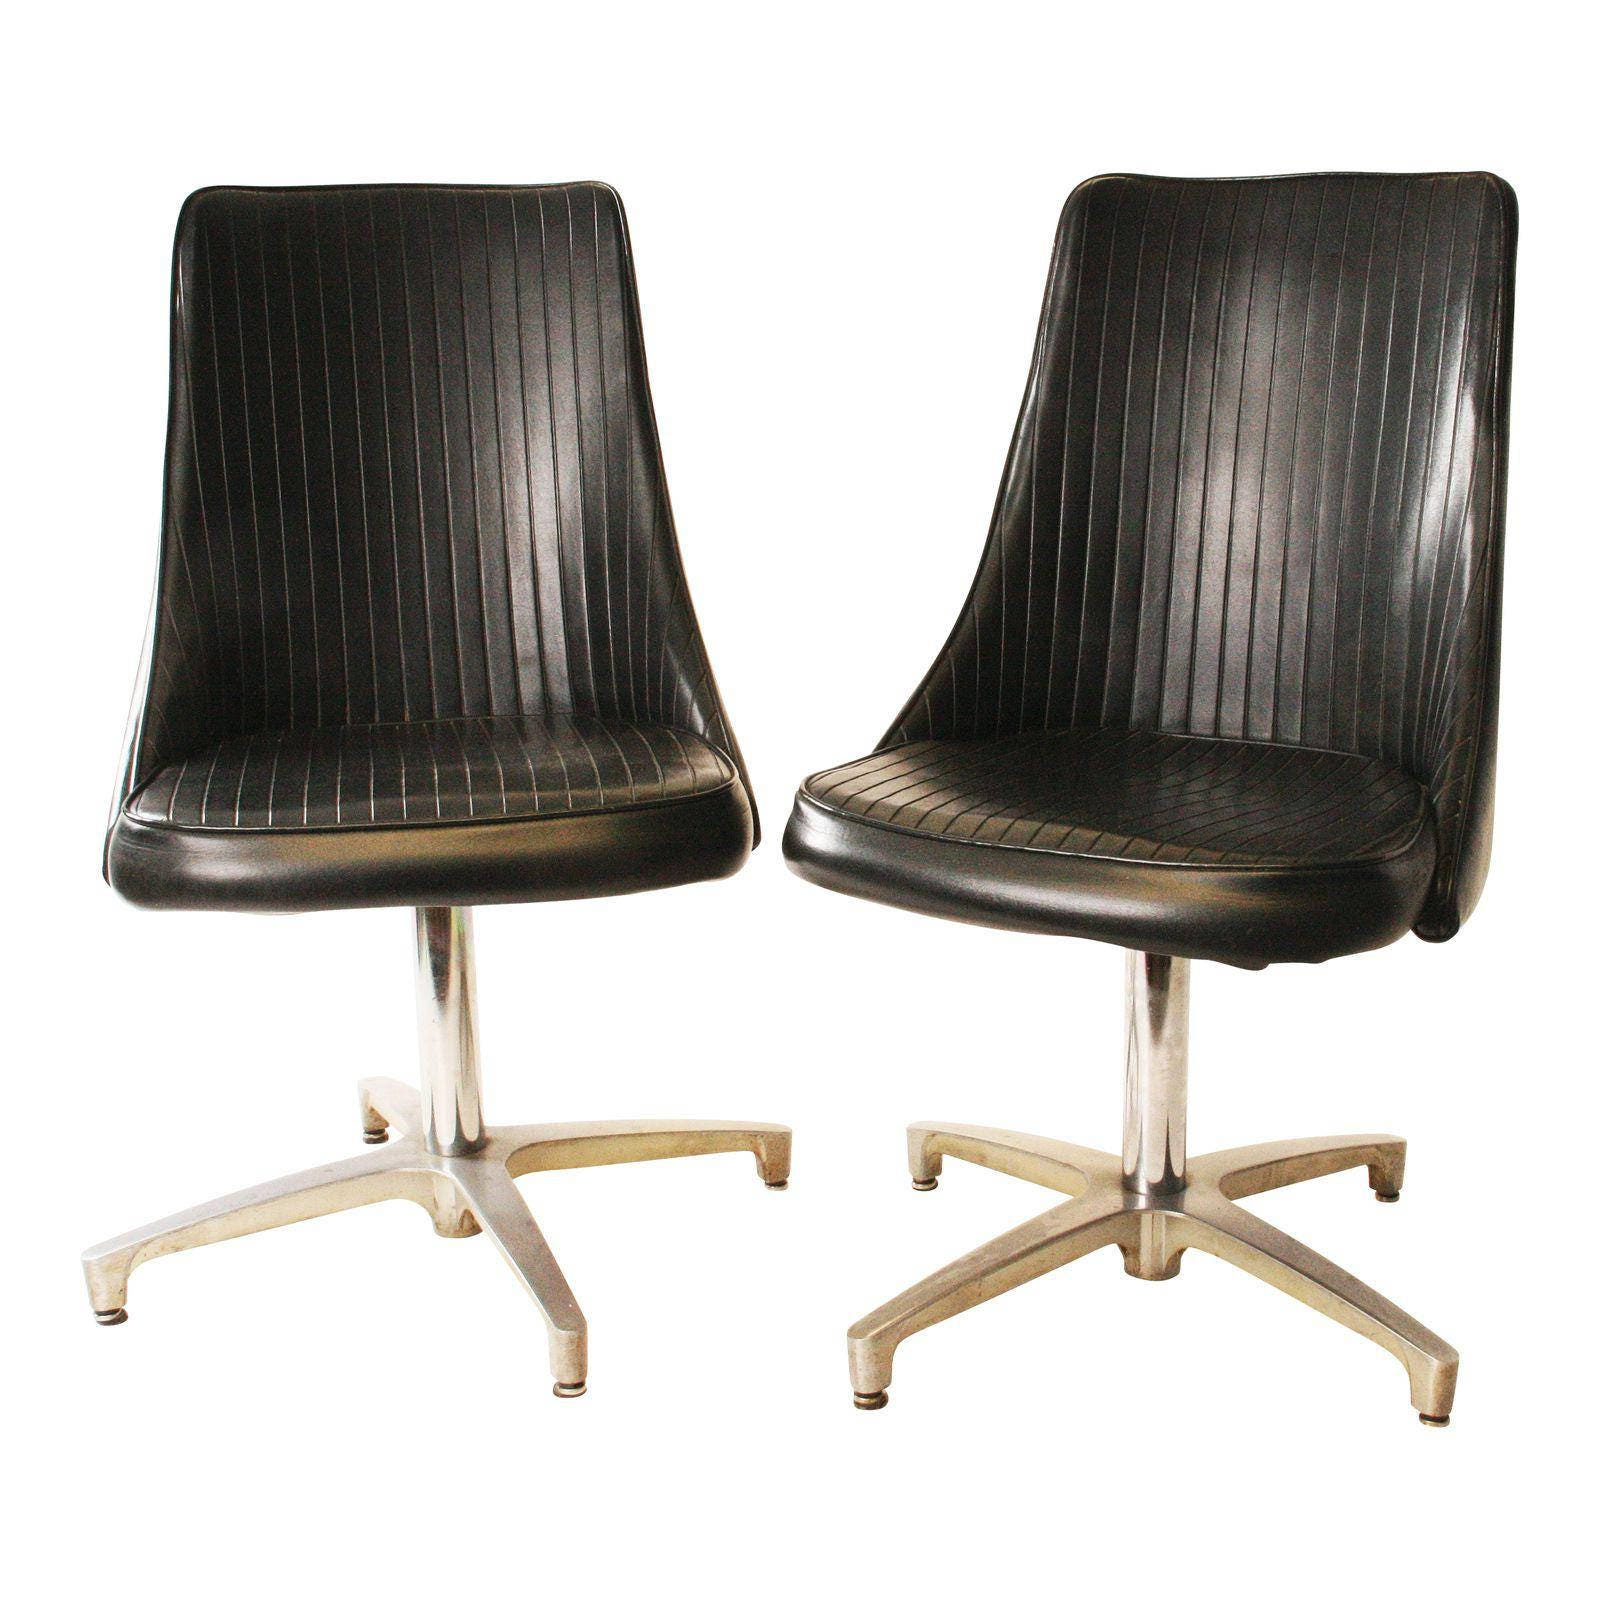 Vintage leather swivel chair - Details Mid Century Modern Swivel Chair